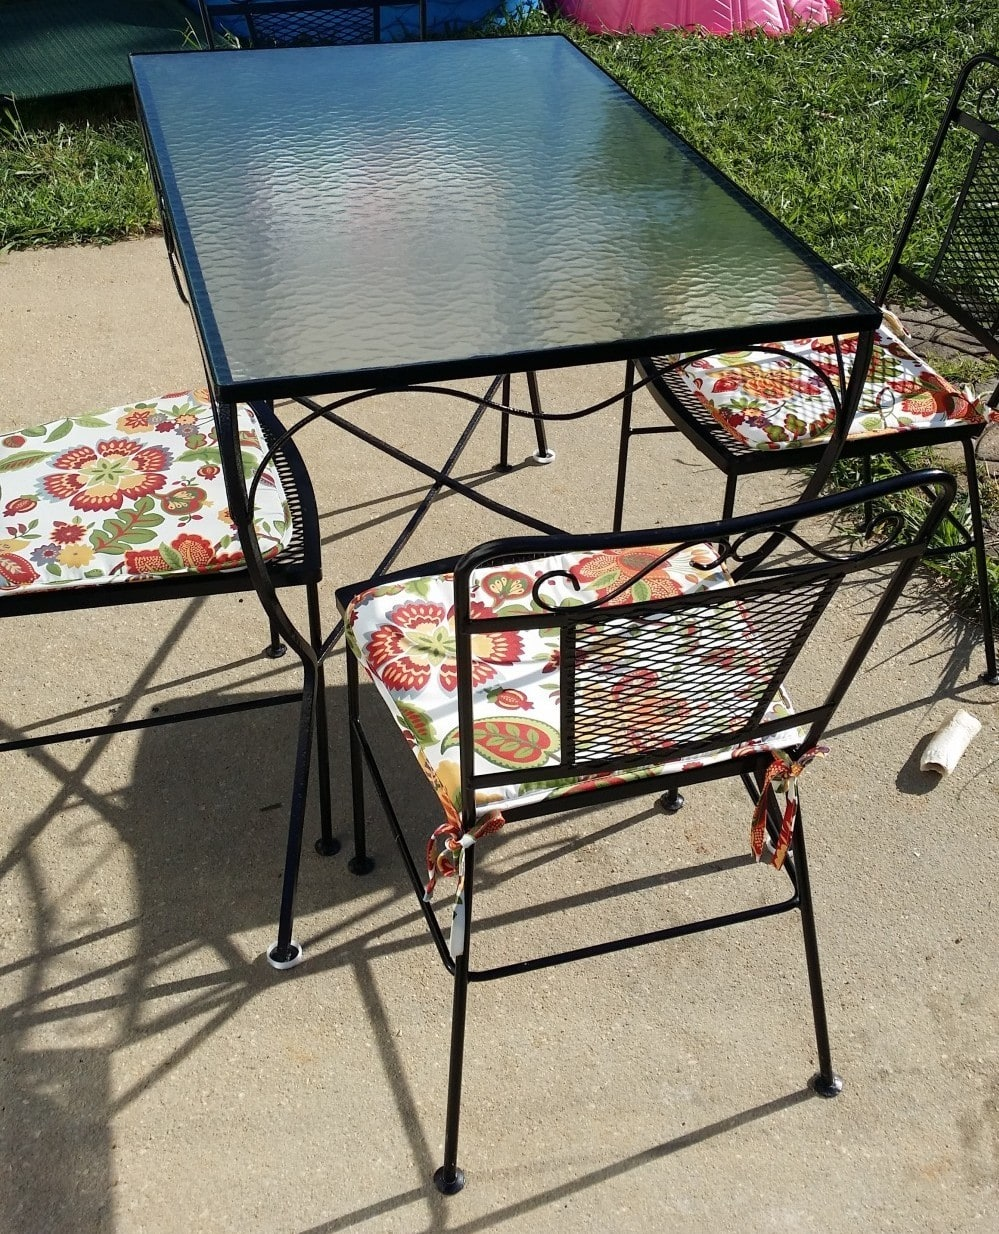 Mumford Restoration of Raleigh, NC provides quality outdoor furniture repair & restoration to Raleigh, Cary, Durham and Chapel Hill, as well as the surrounding areas from Greensboro to Fayetteville. Call (919) 510-6310.